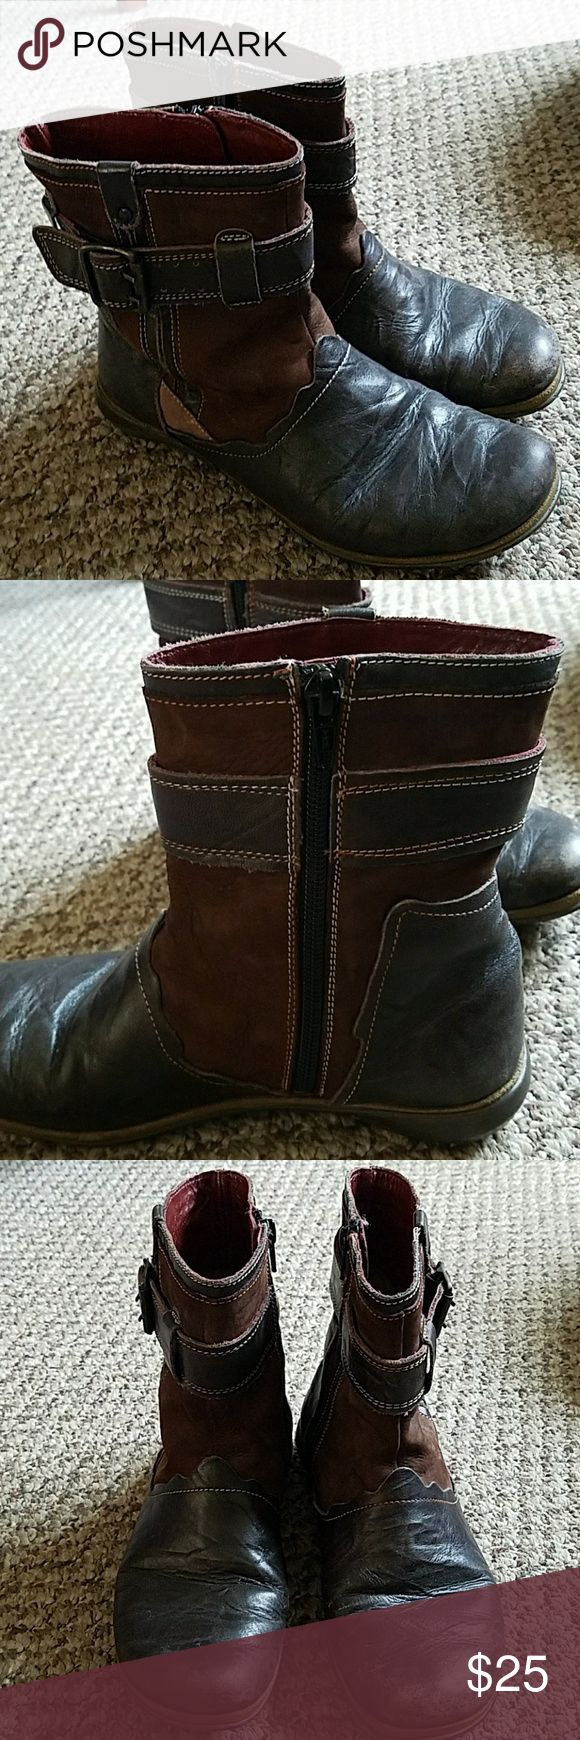 Women's Leather Romika boots Leather boots in good condition. Zip up. Romika Shoes Ankle Boots & Booties